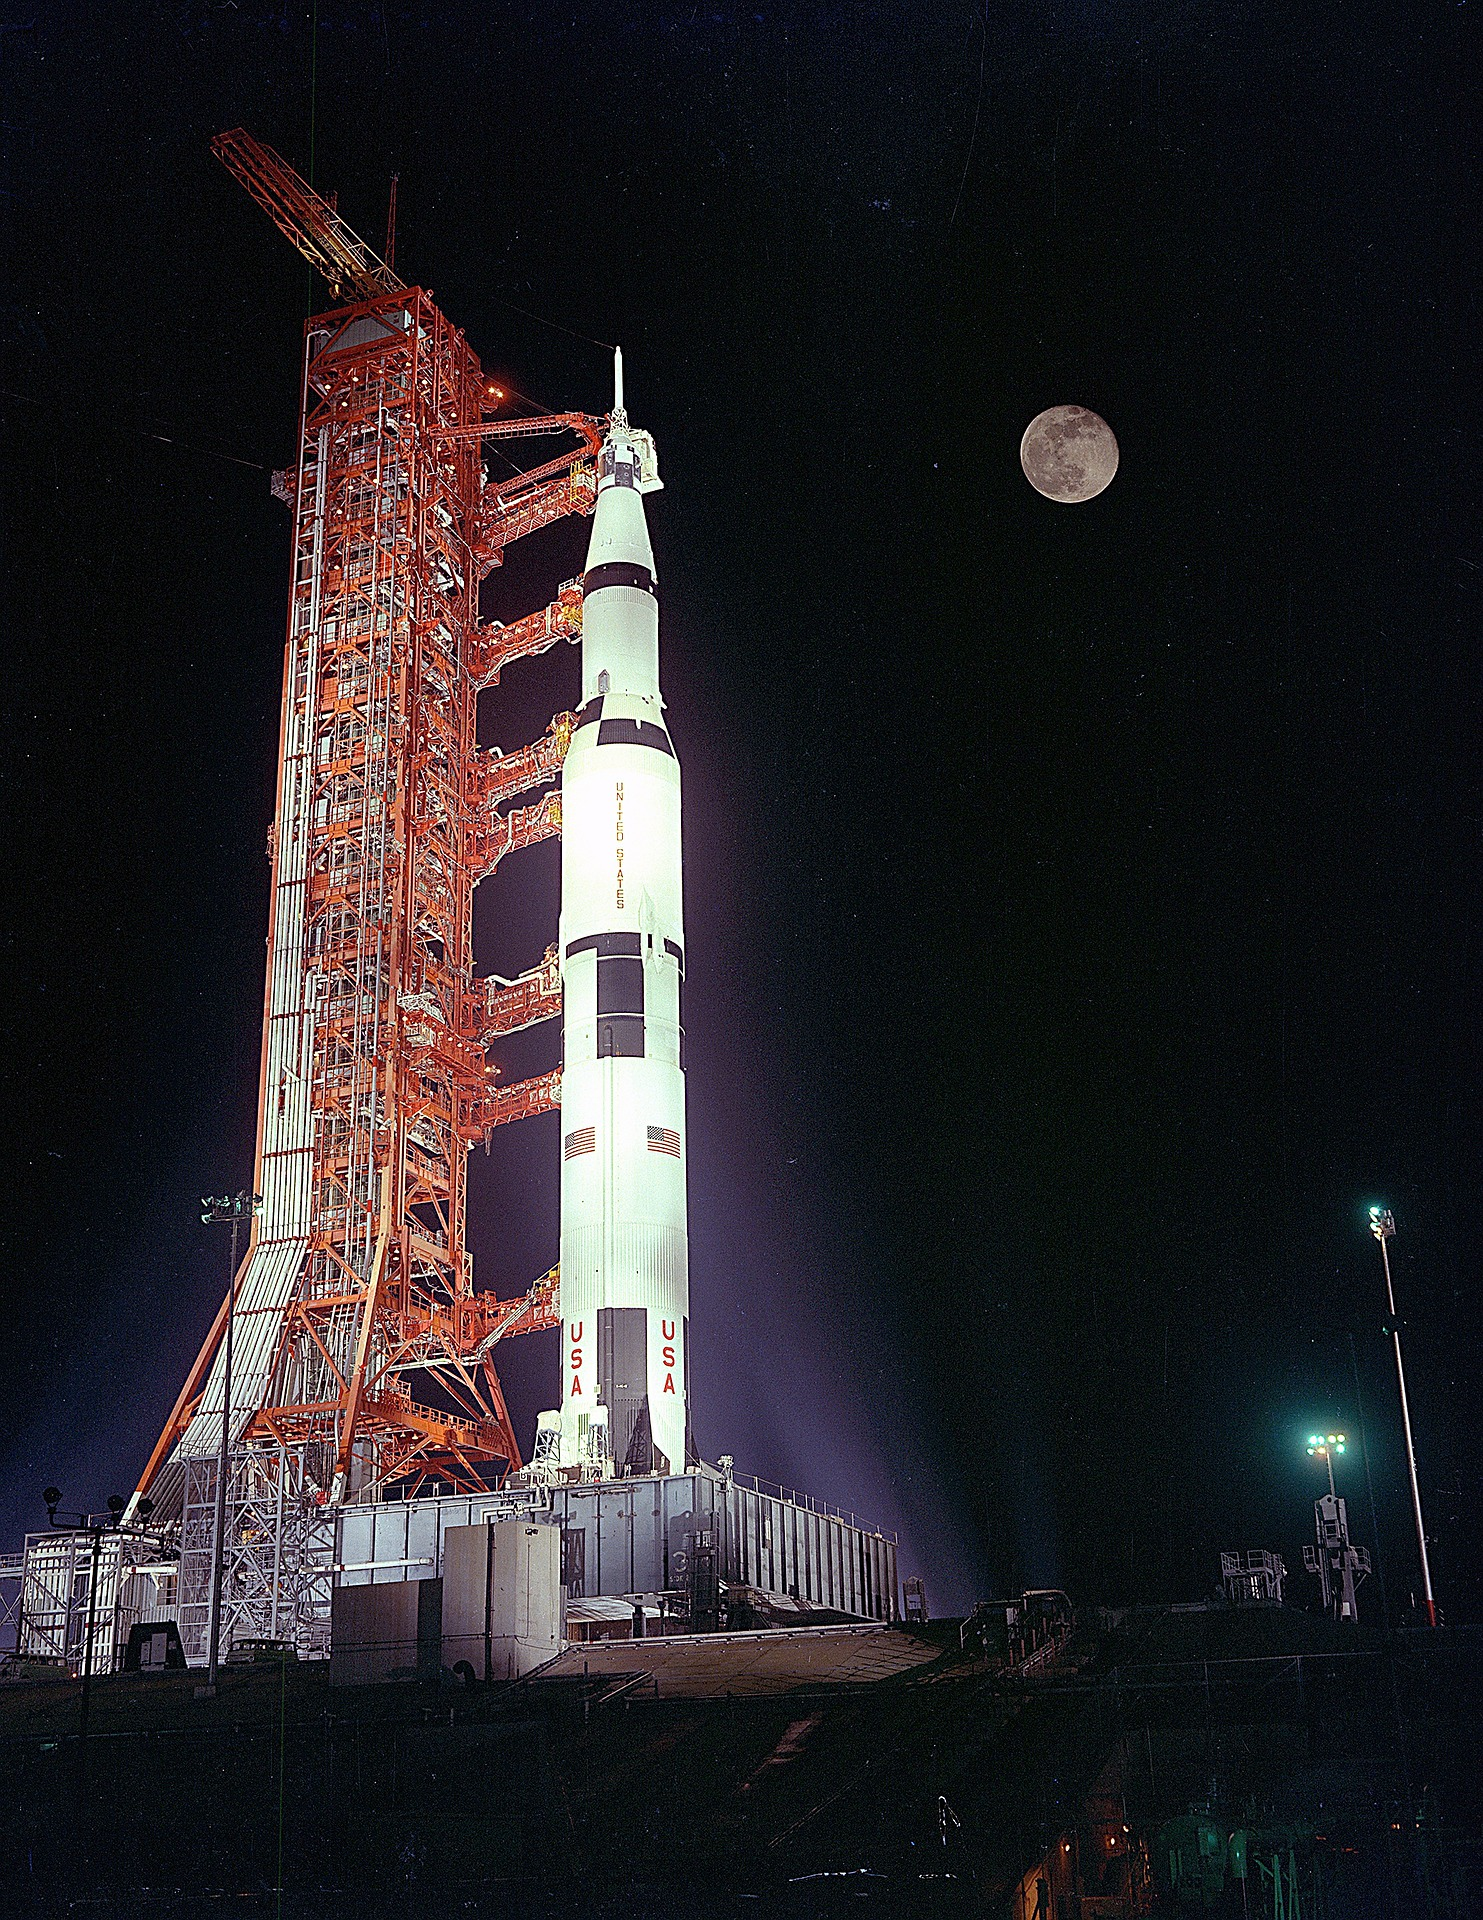 Apollo 17, Apollo, Atlantis, Lunar, Mission, HQ Photo